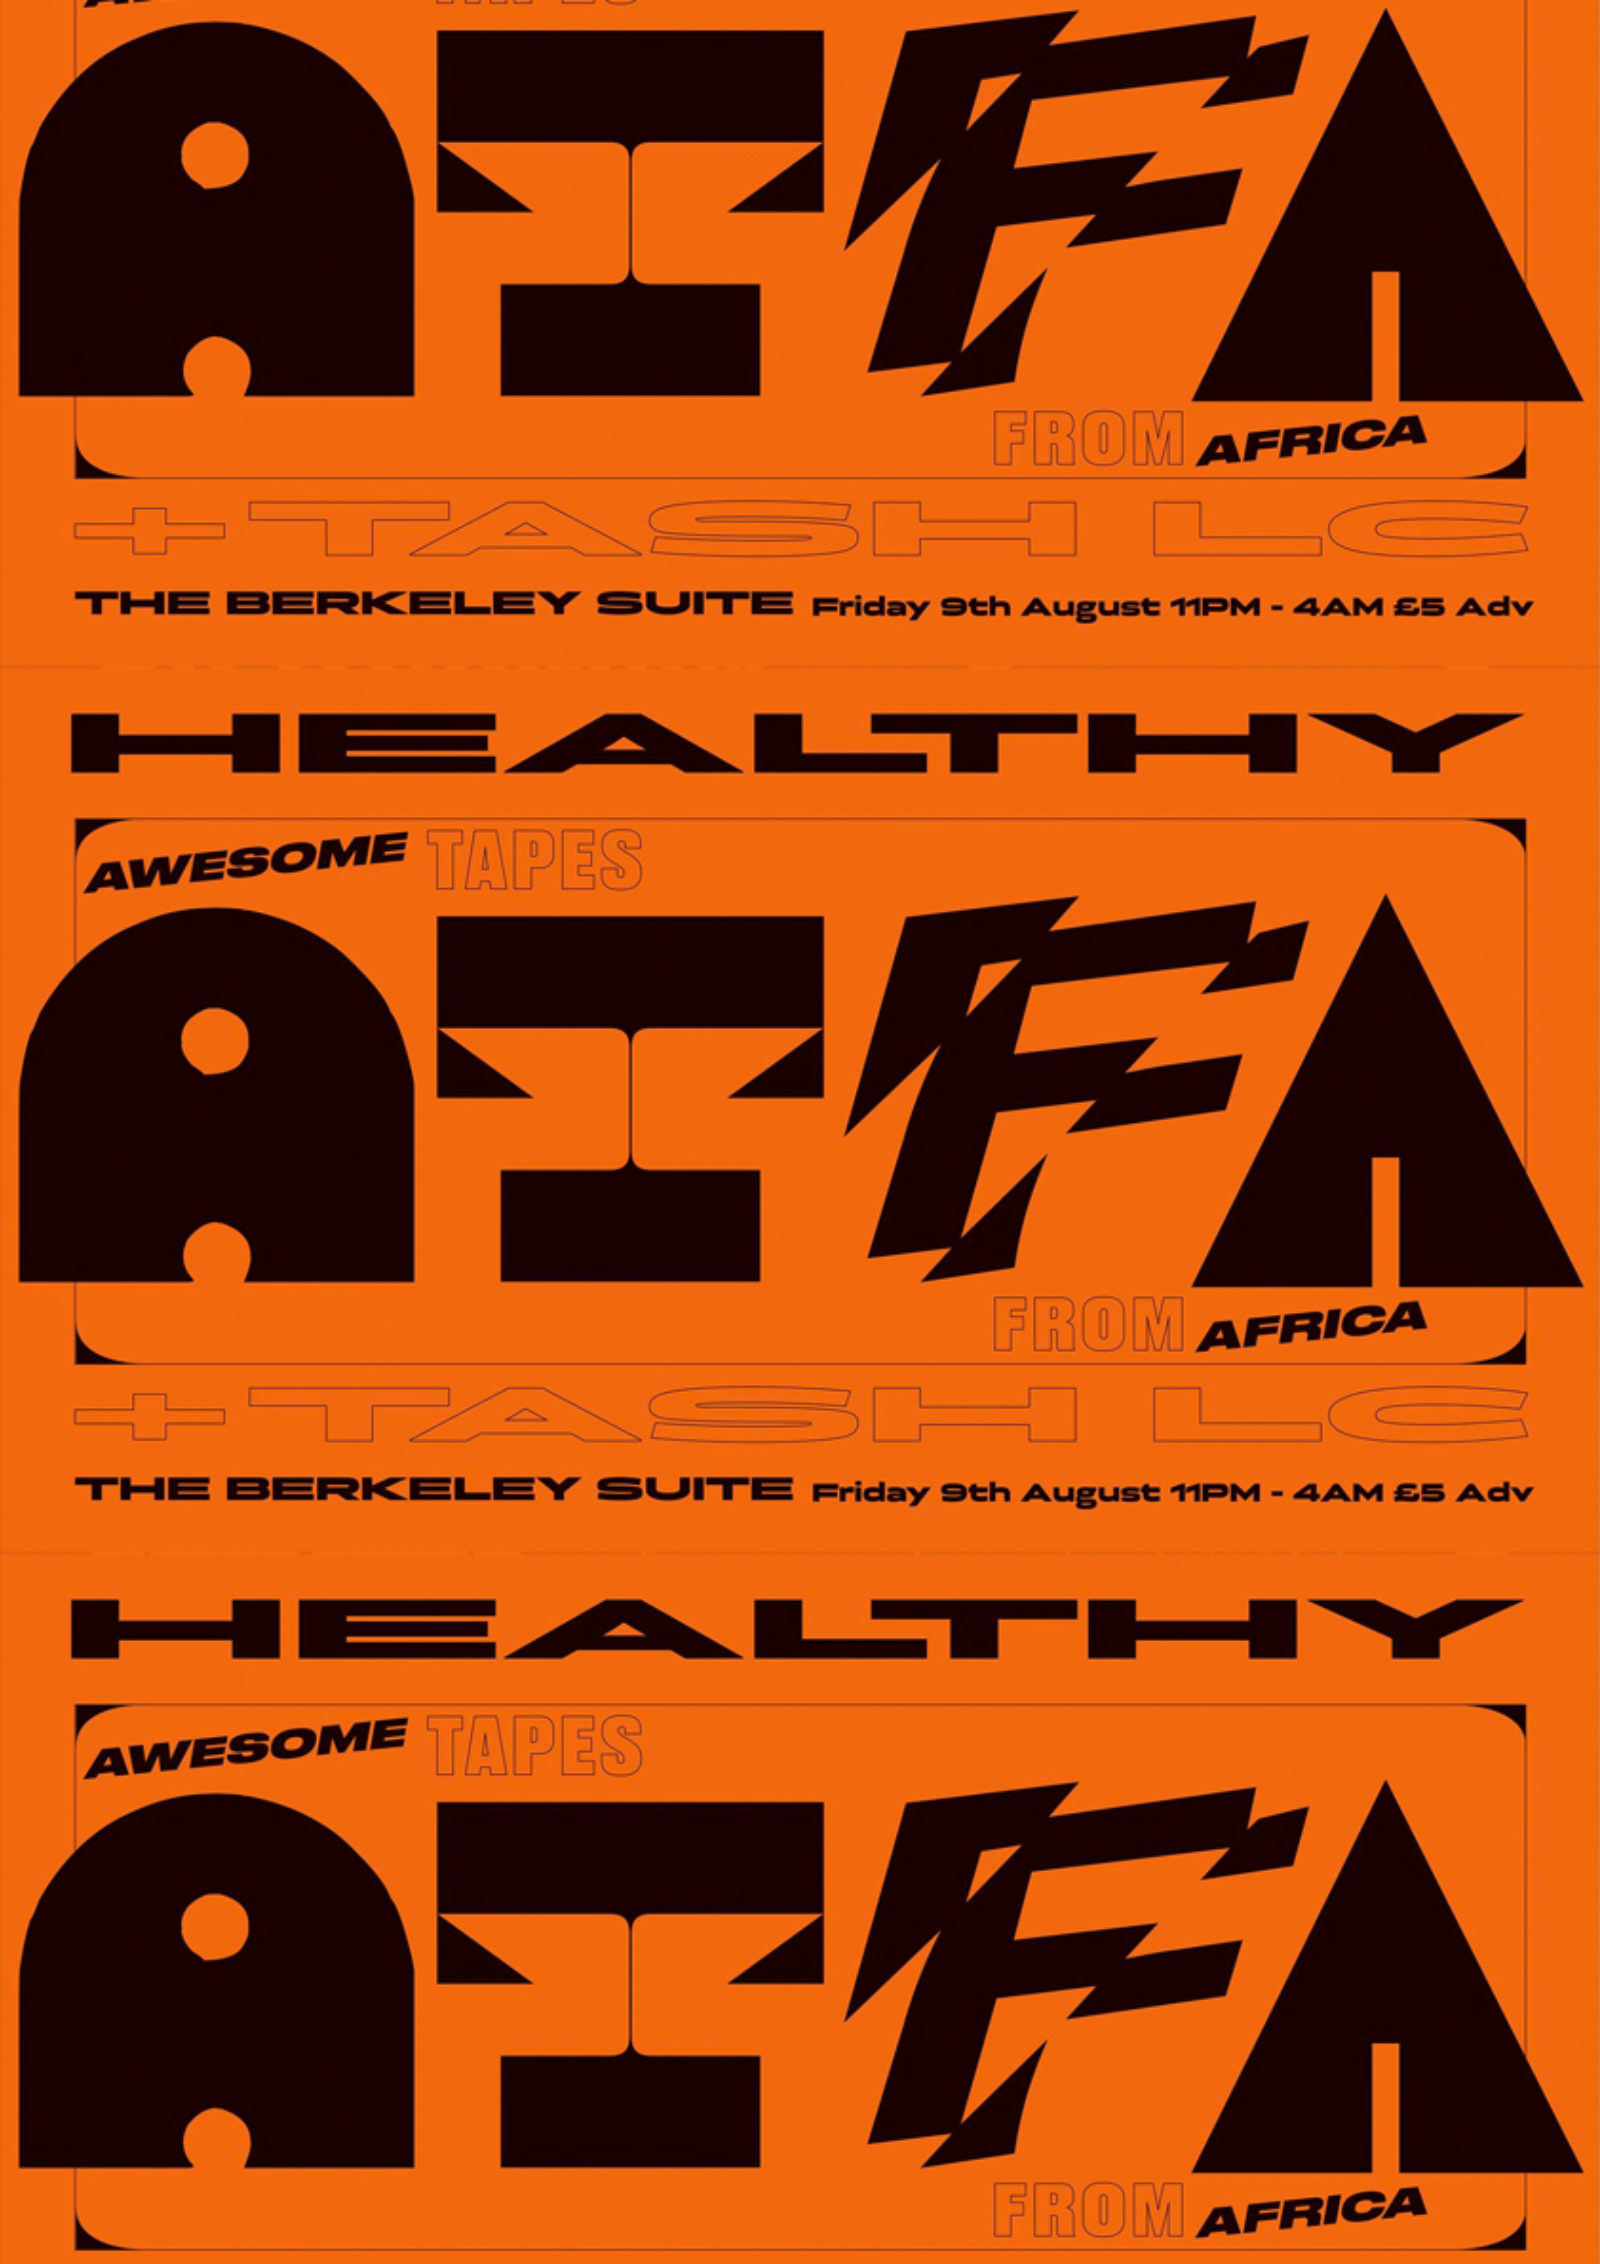 HEALTHY - Awesome Tapes From Africa & Tash LC